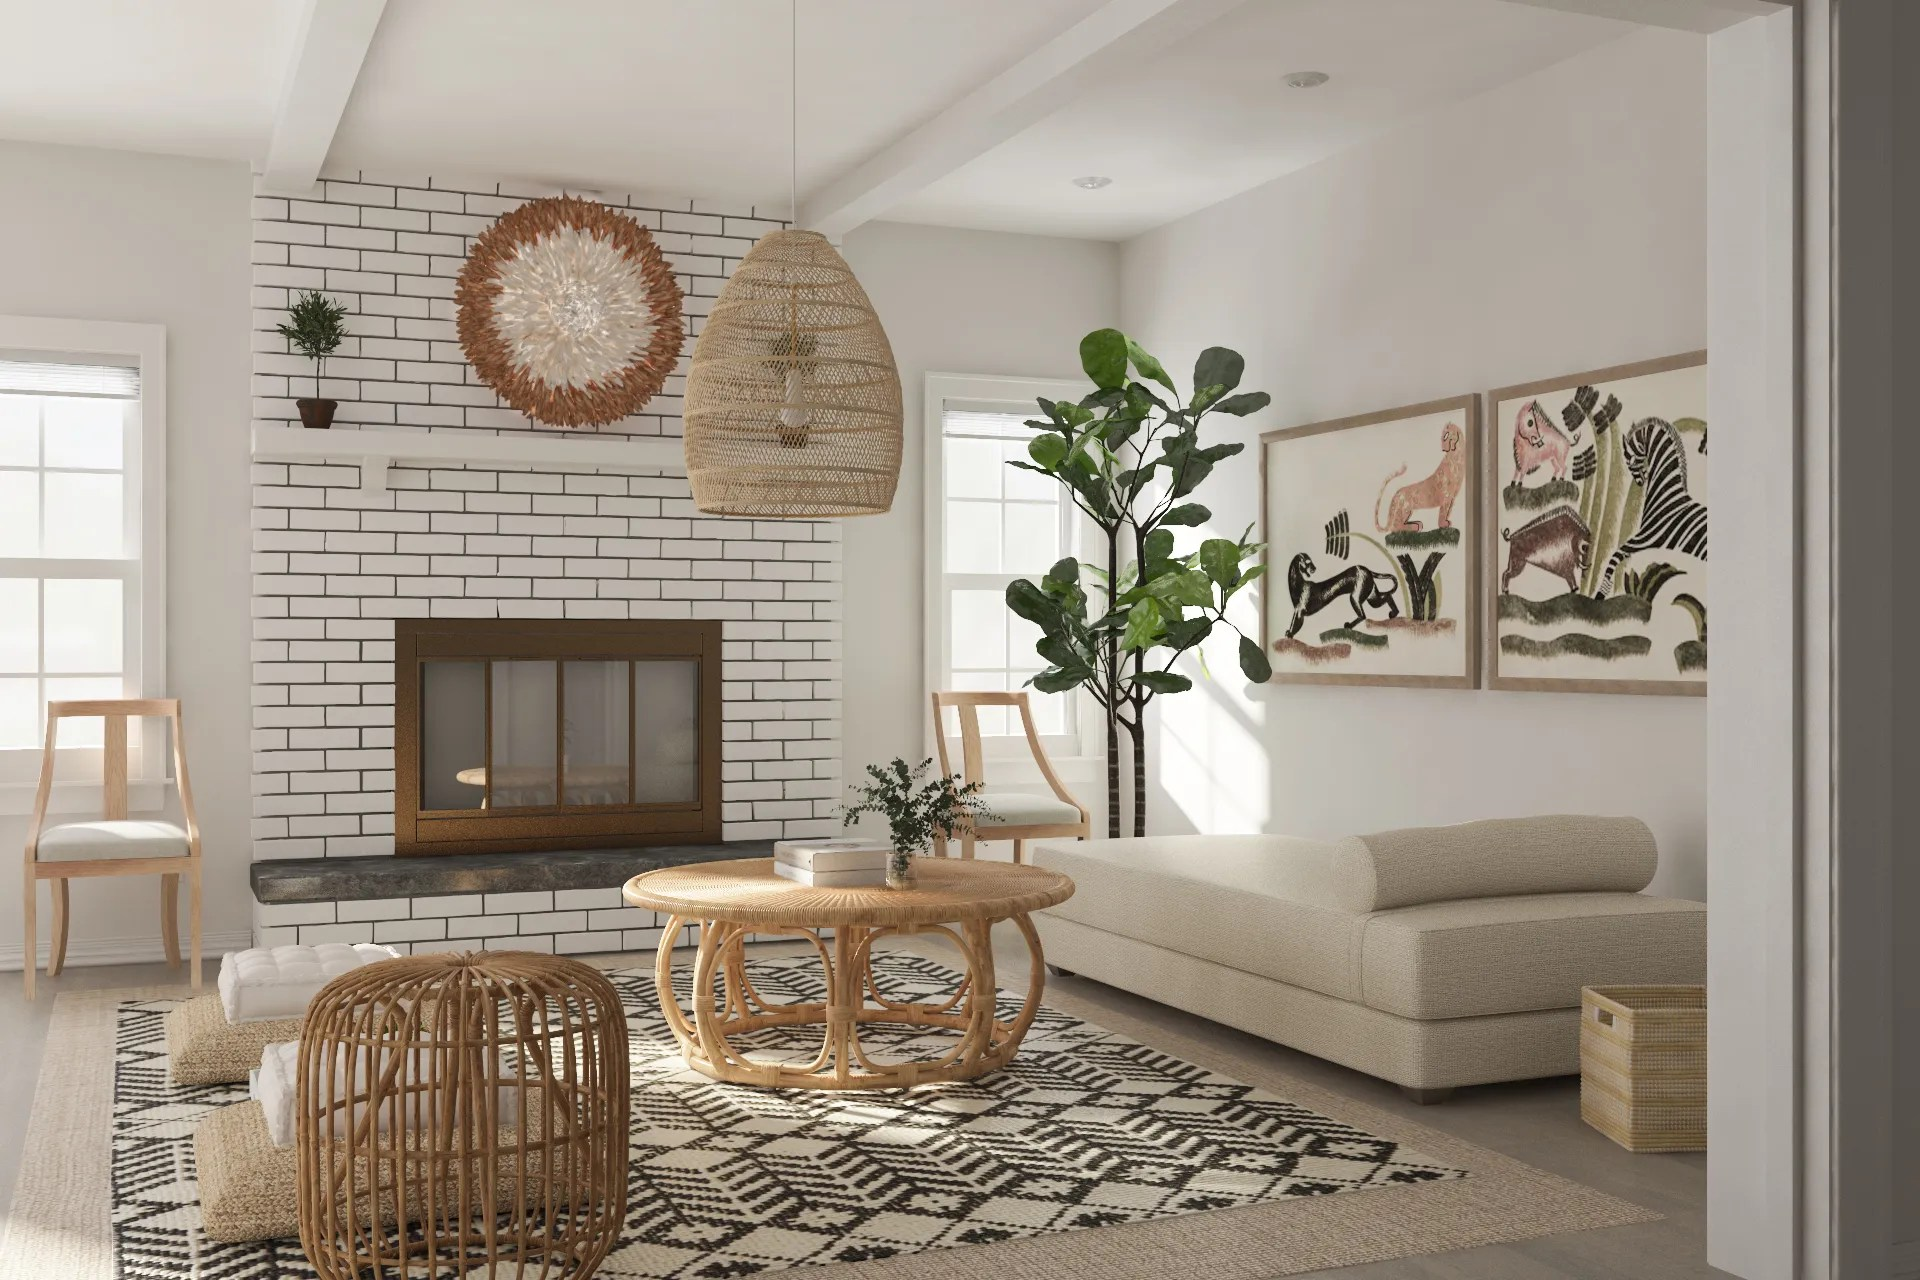 living room images small rooms with tv how to design your without a sofa architectural digest